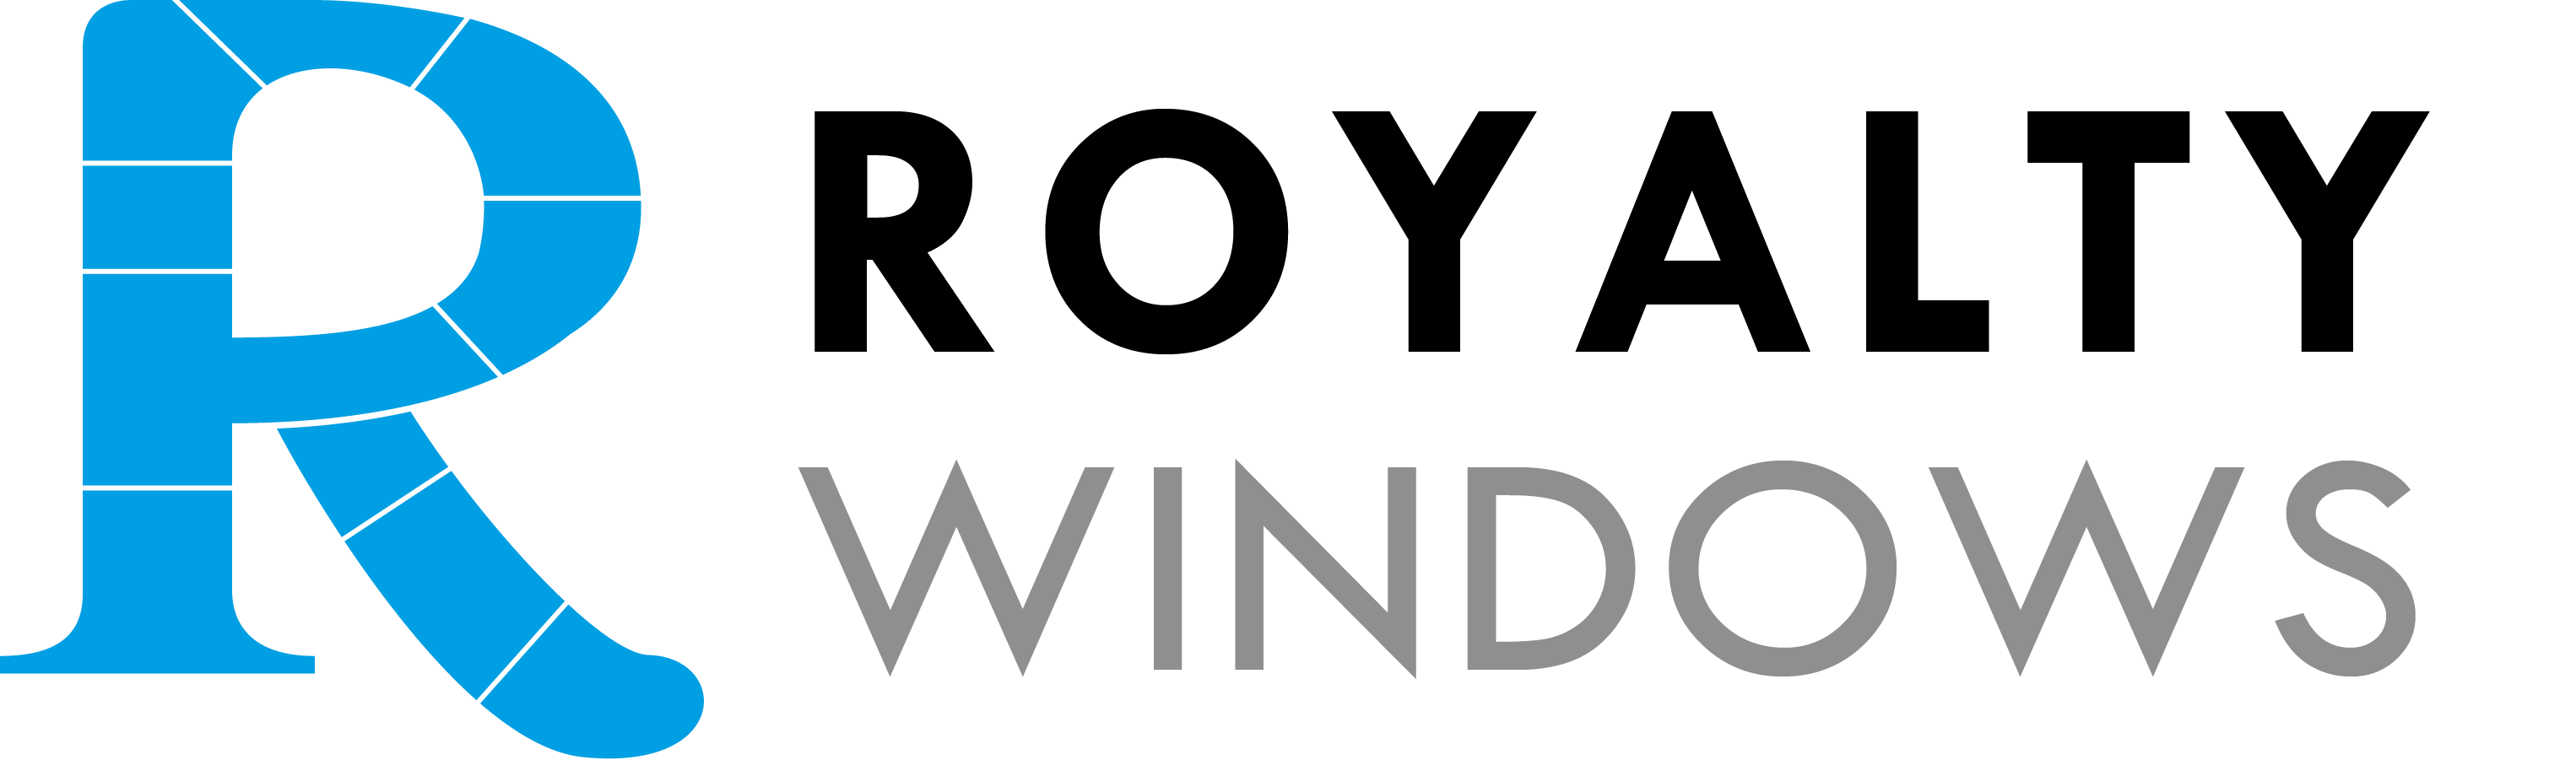 Royalty Windows Logo